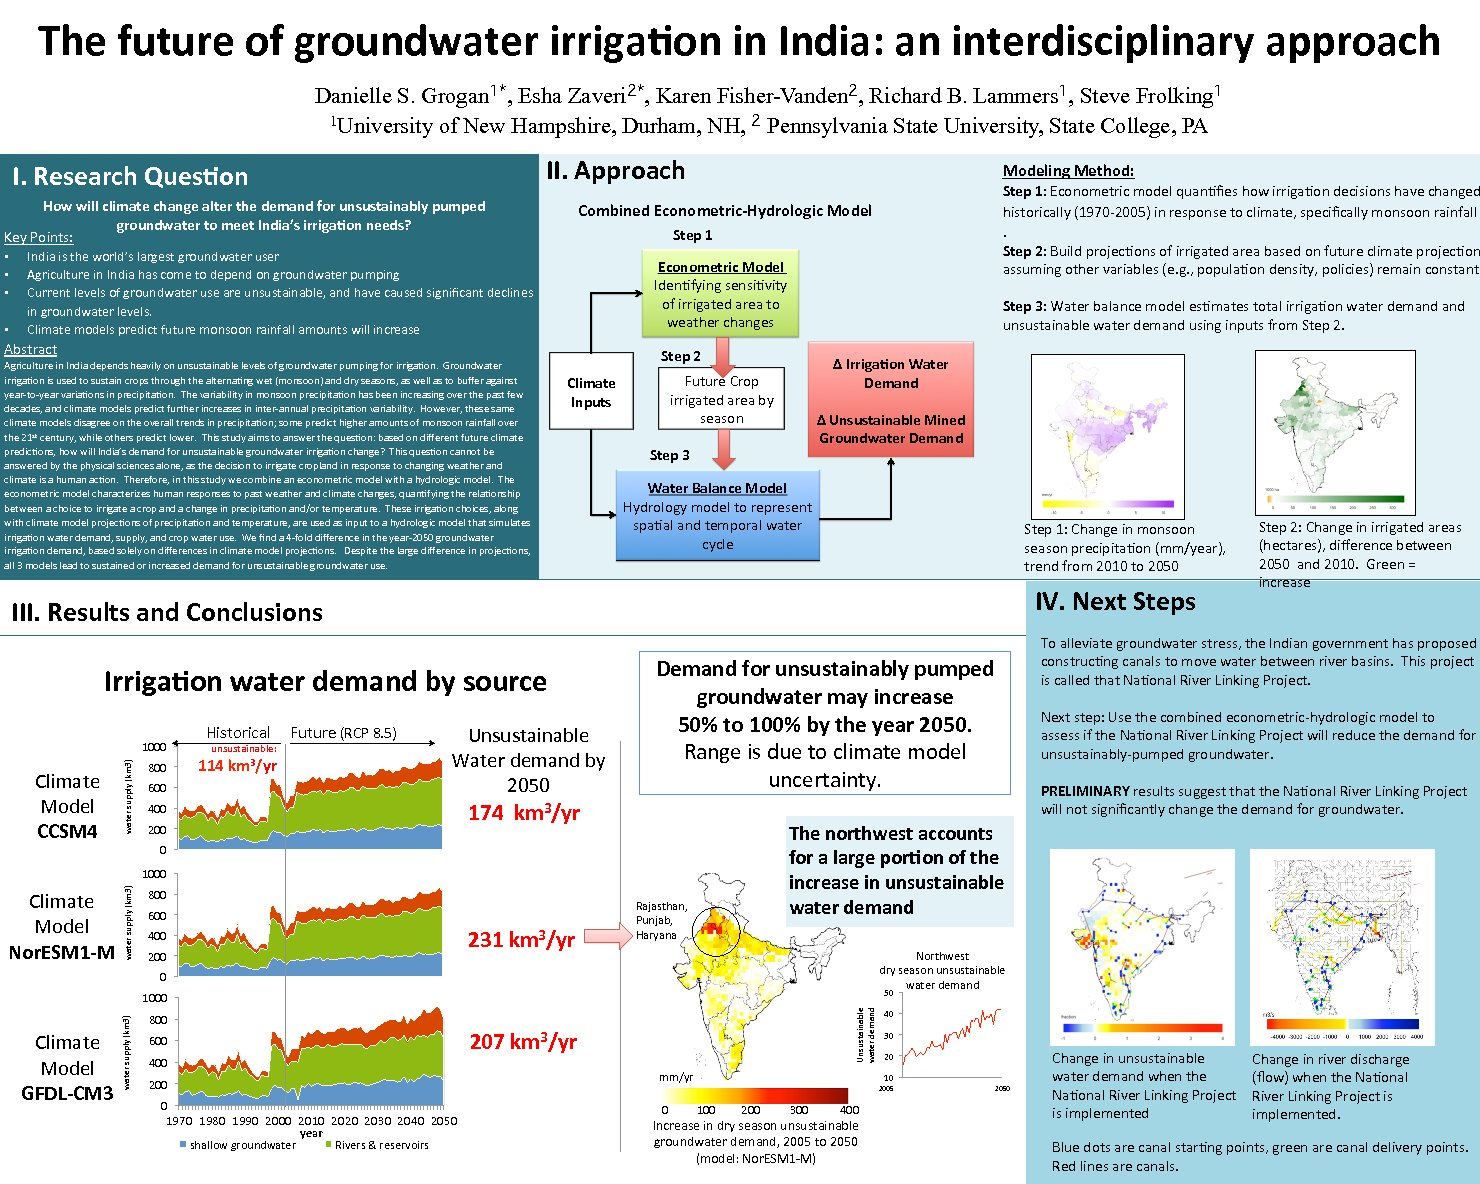 The Future Of Groundwater Irrigation In India by dgrogan